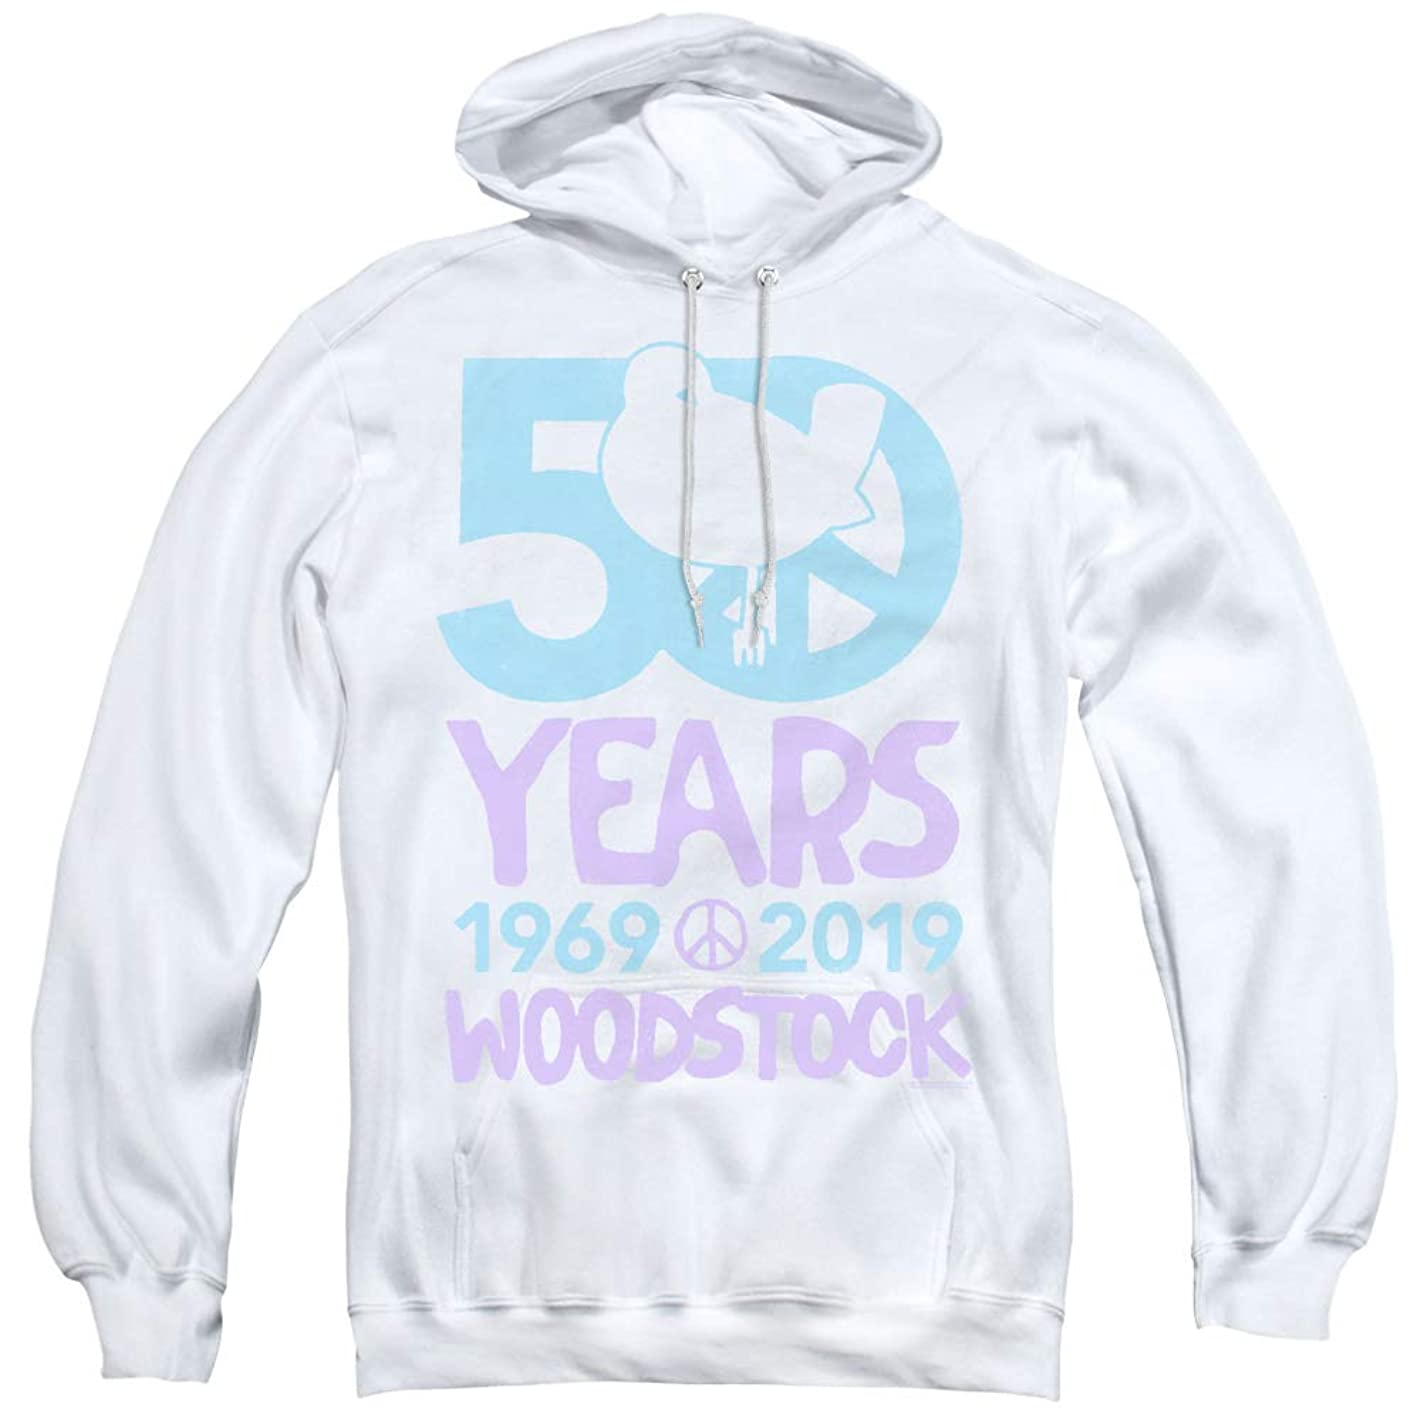 Woodstock 50 Simple Unisex Adult Pull-Over Hoodie for Men and Women